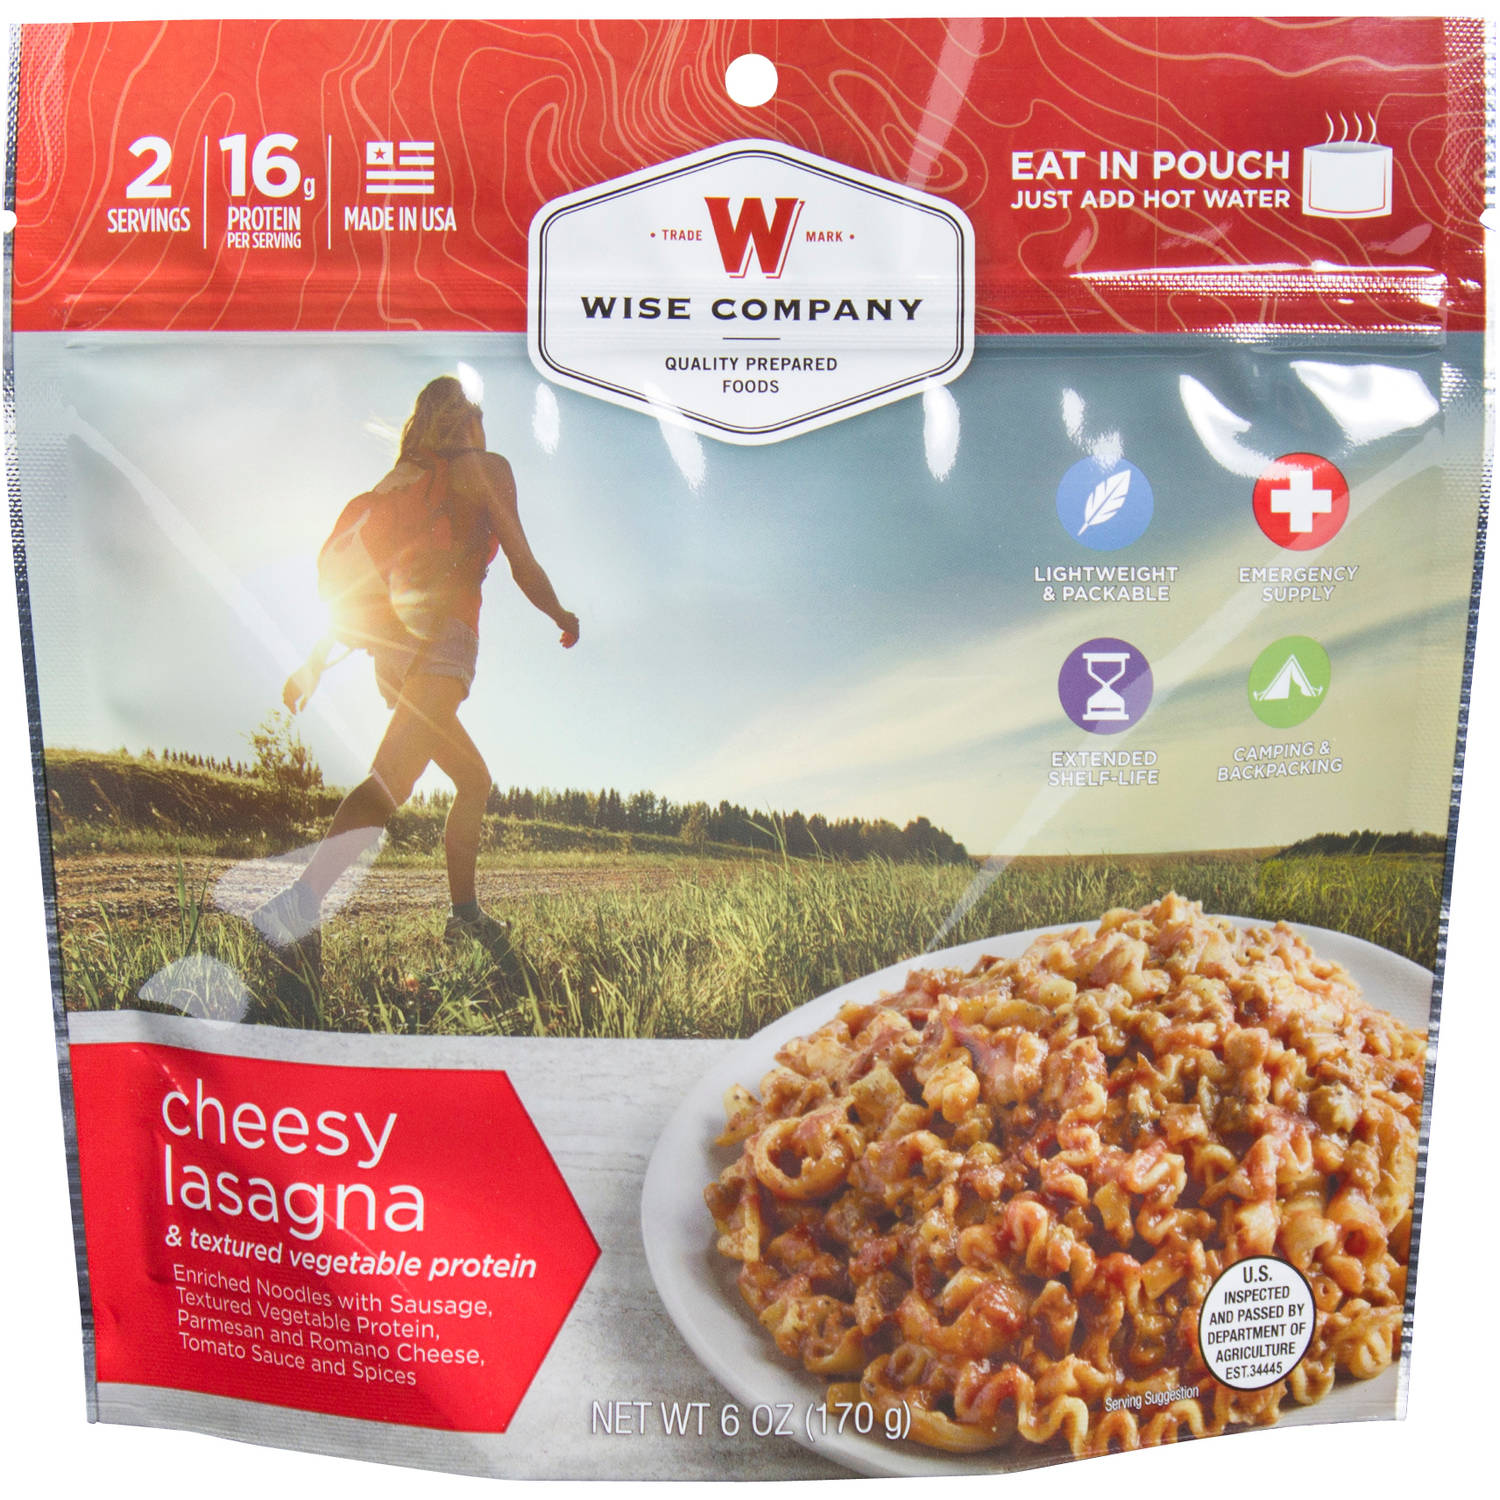 Wise Company Cheesy Lasagna & Textured Vegetable Protein Prepared Meal, 6 oz